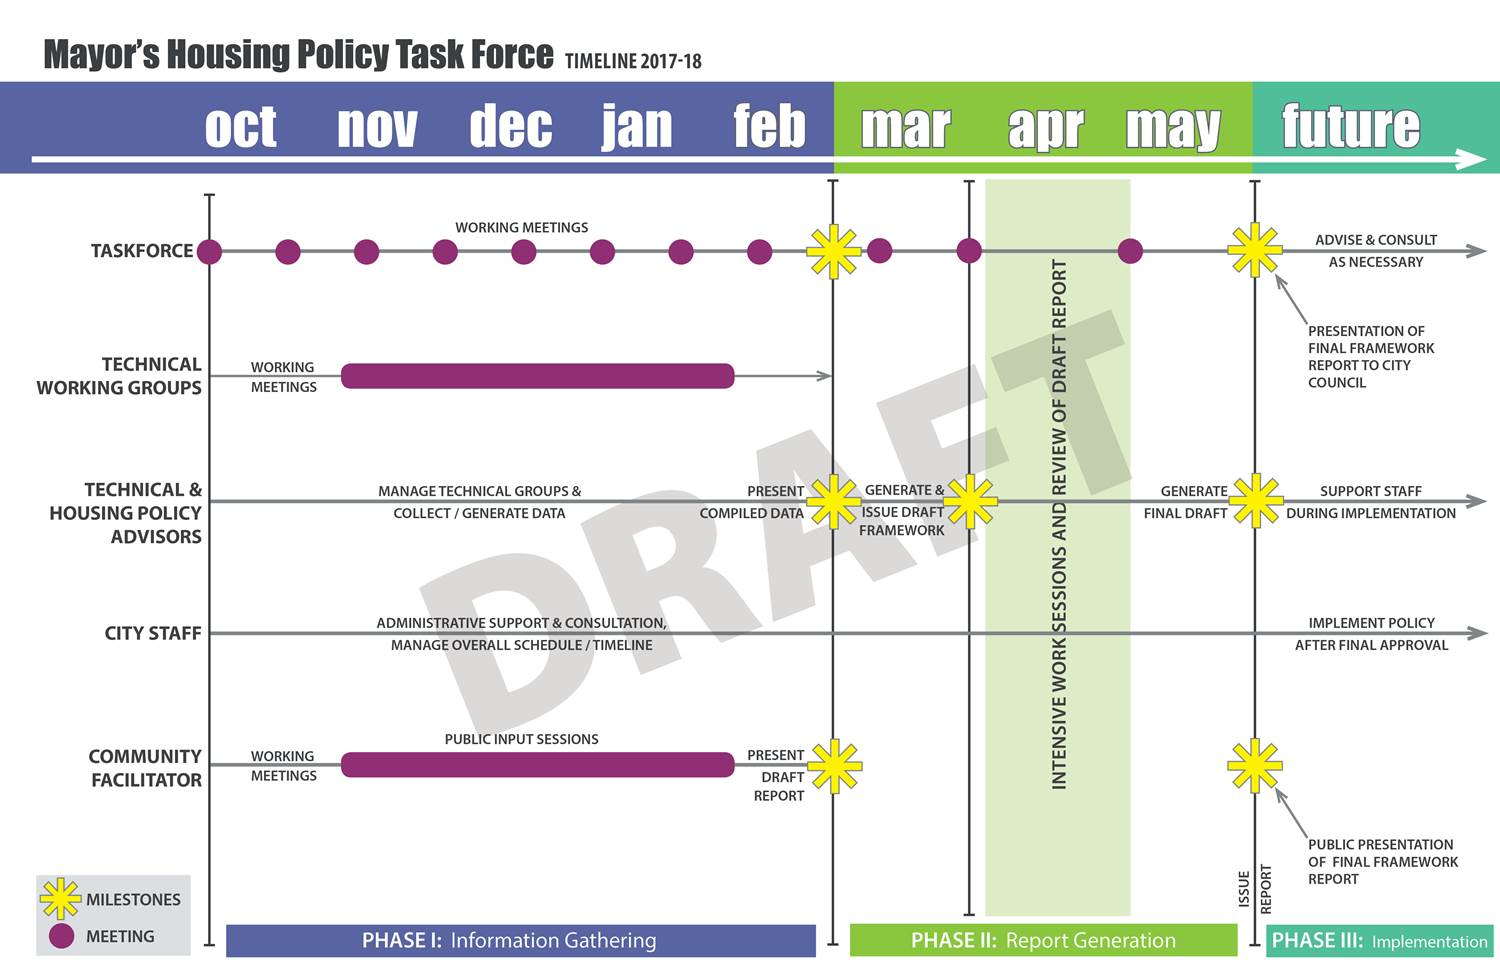 Mayor's Housing Policy Task Force Timeline 2017-18